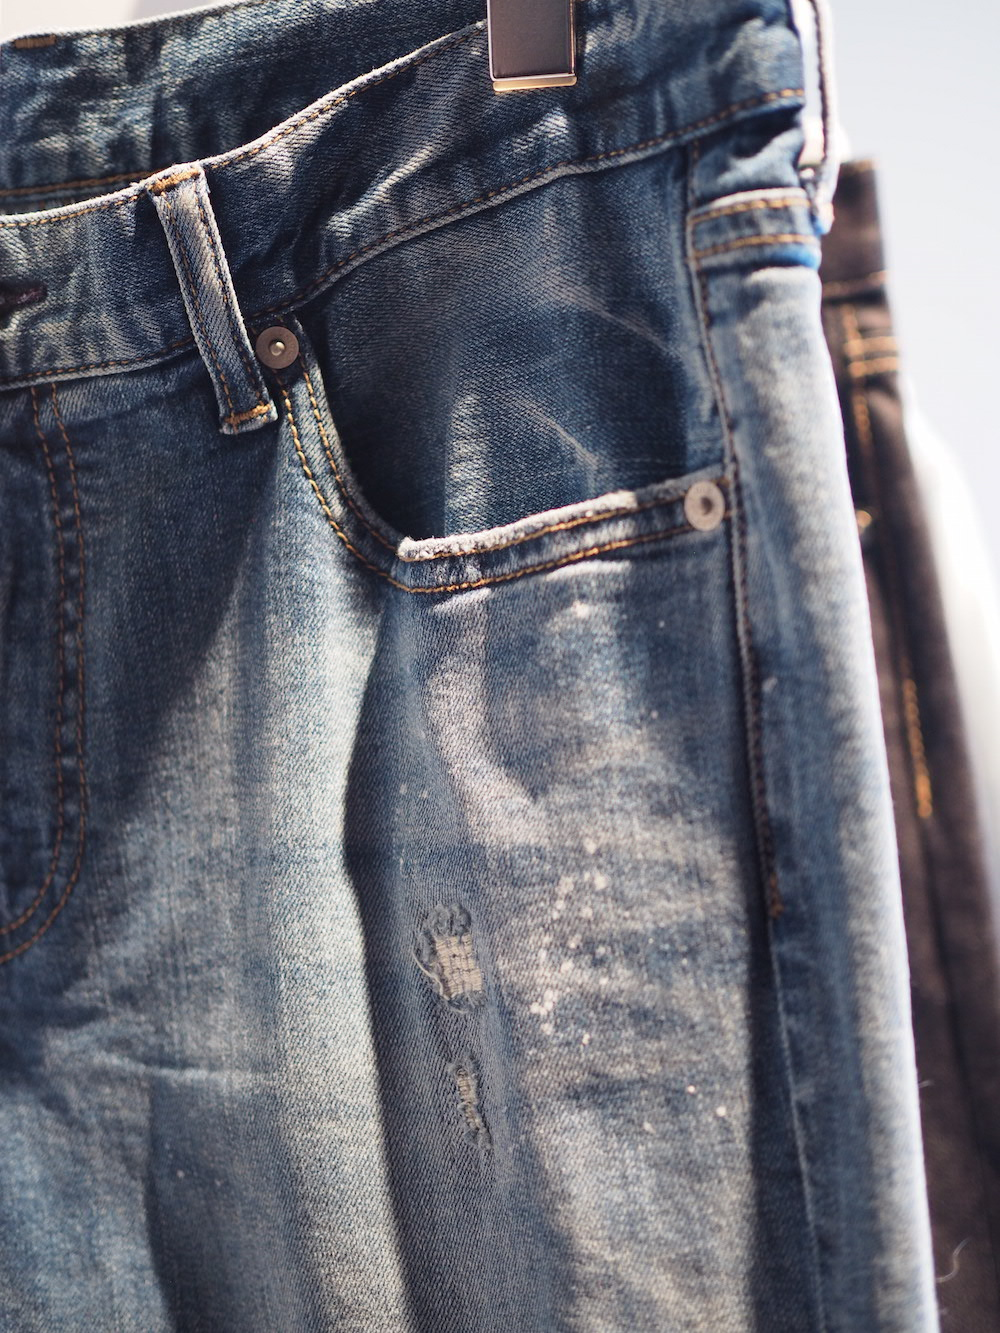 denim damage finishing on display at Tokyo SS lifewear exhibit 2017